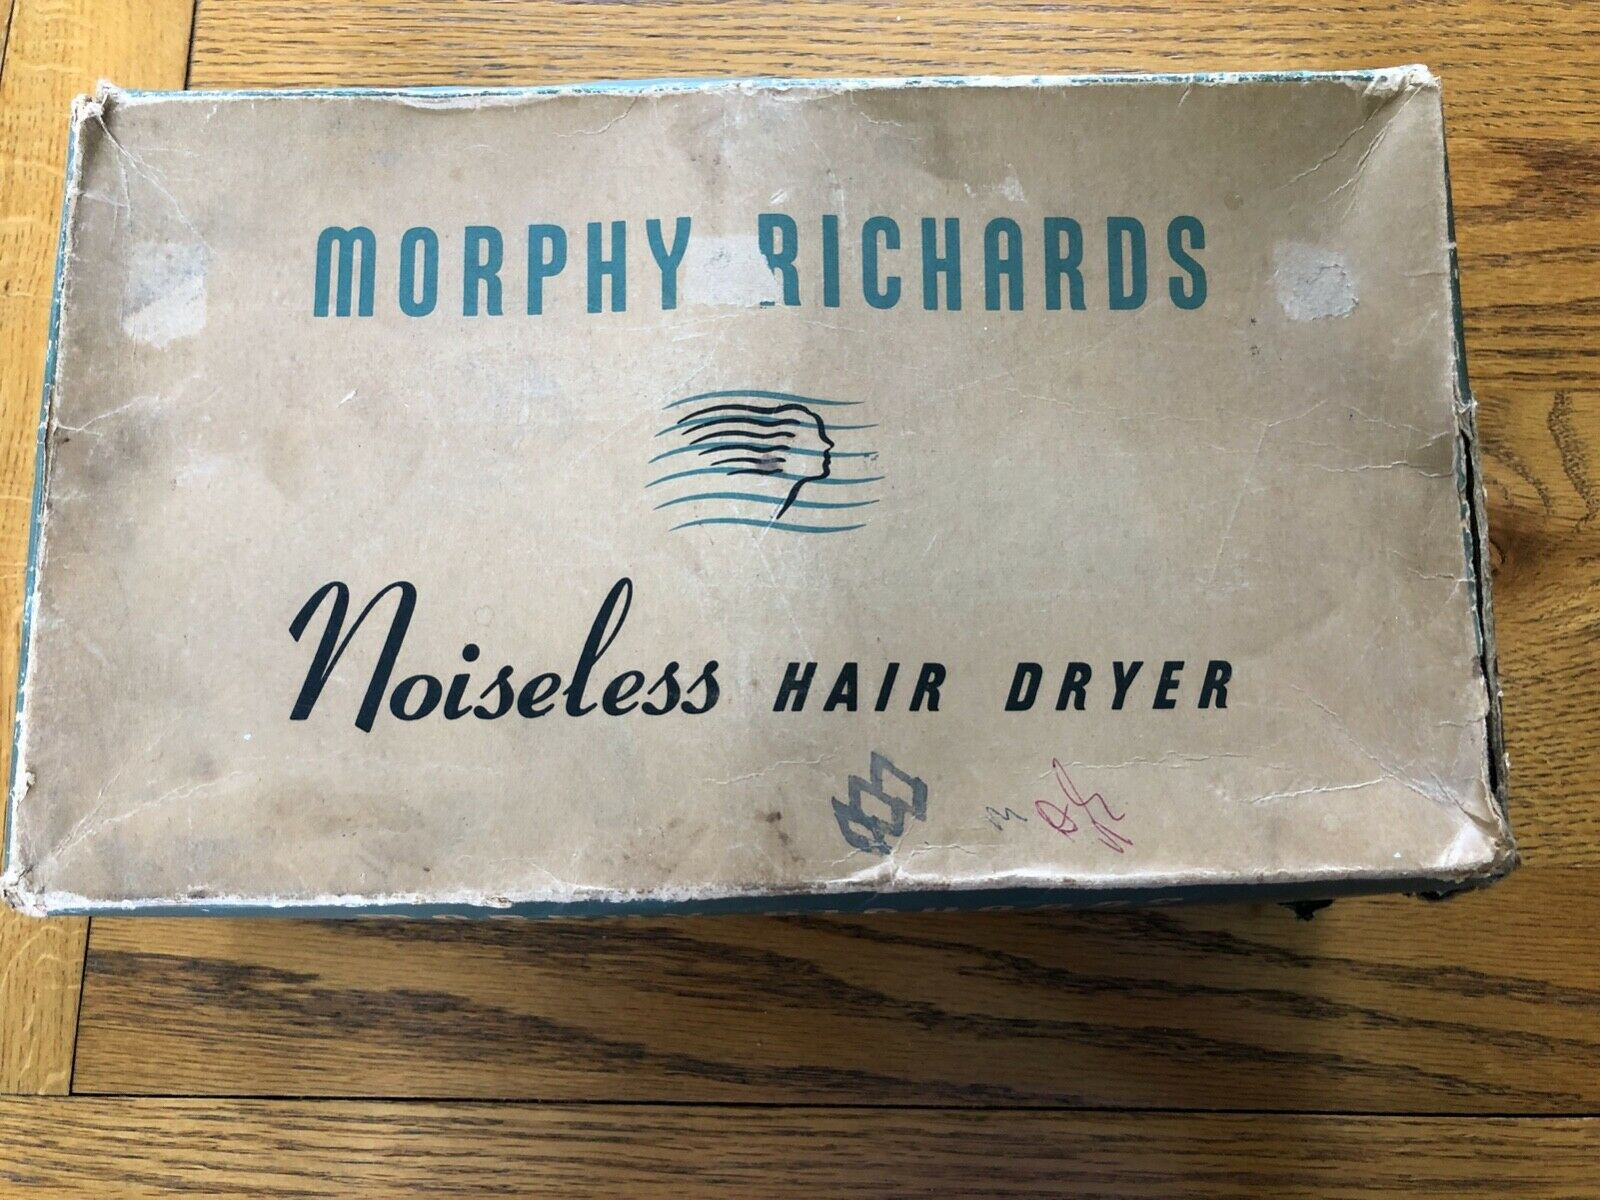 Morphy Richards Noiseless Hair Dryer, Original Box, Vintage Retro collectable